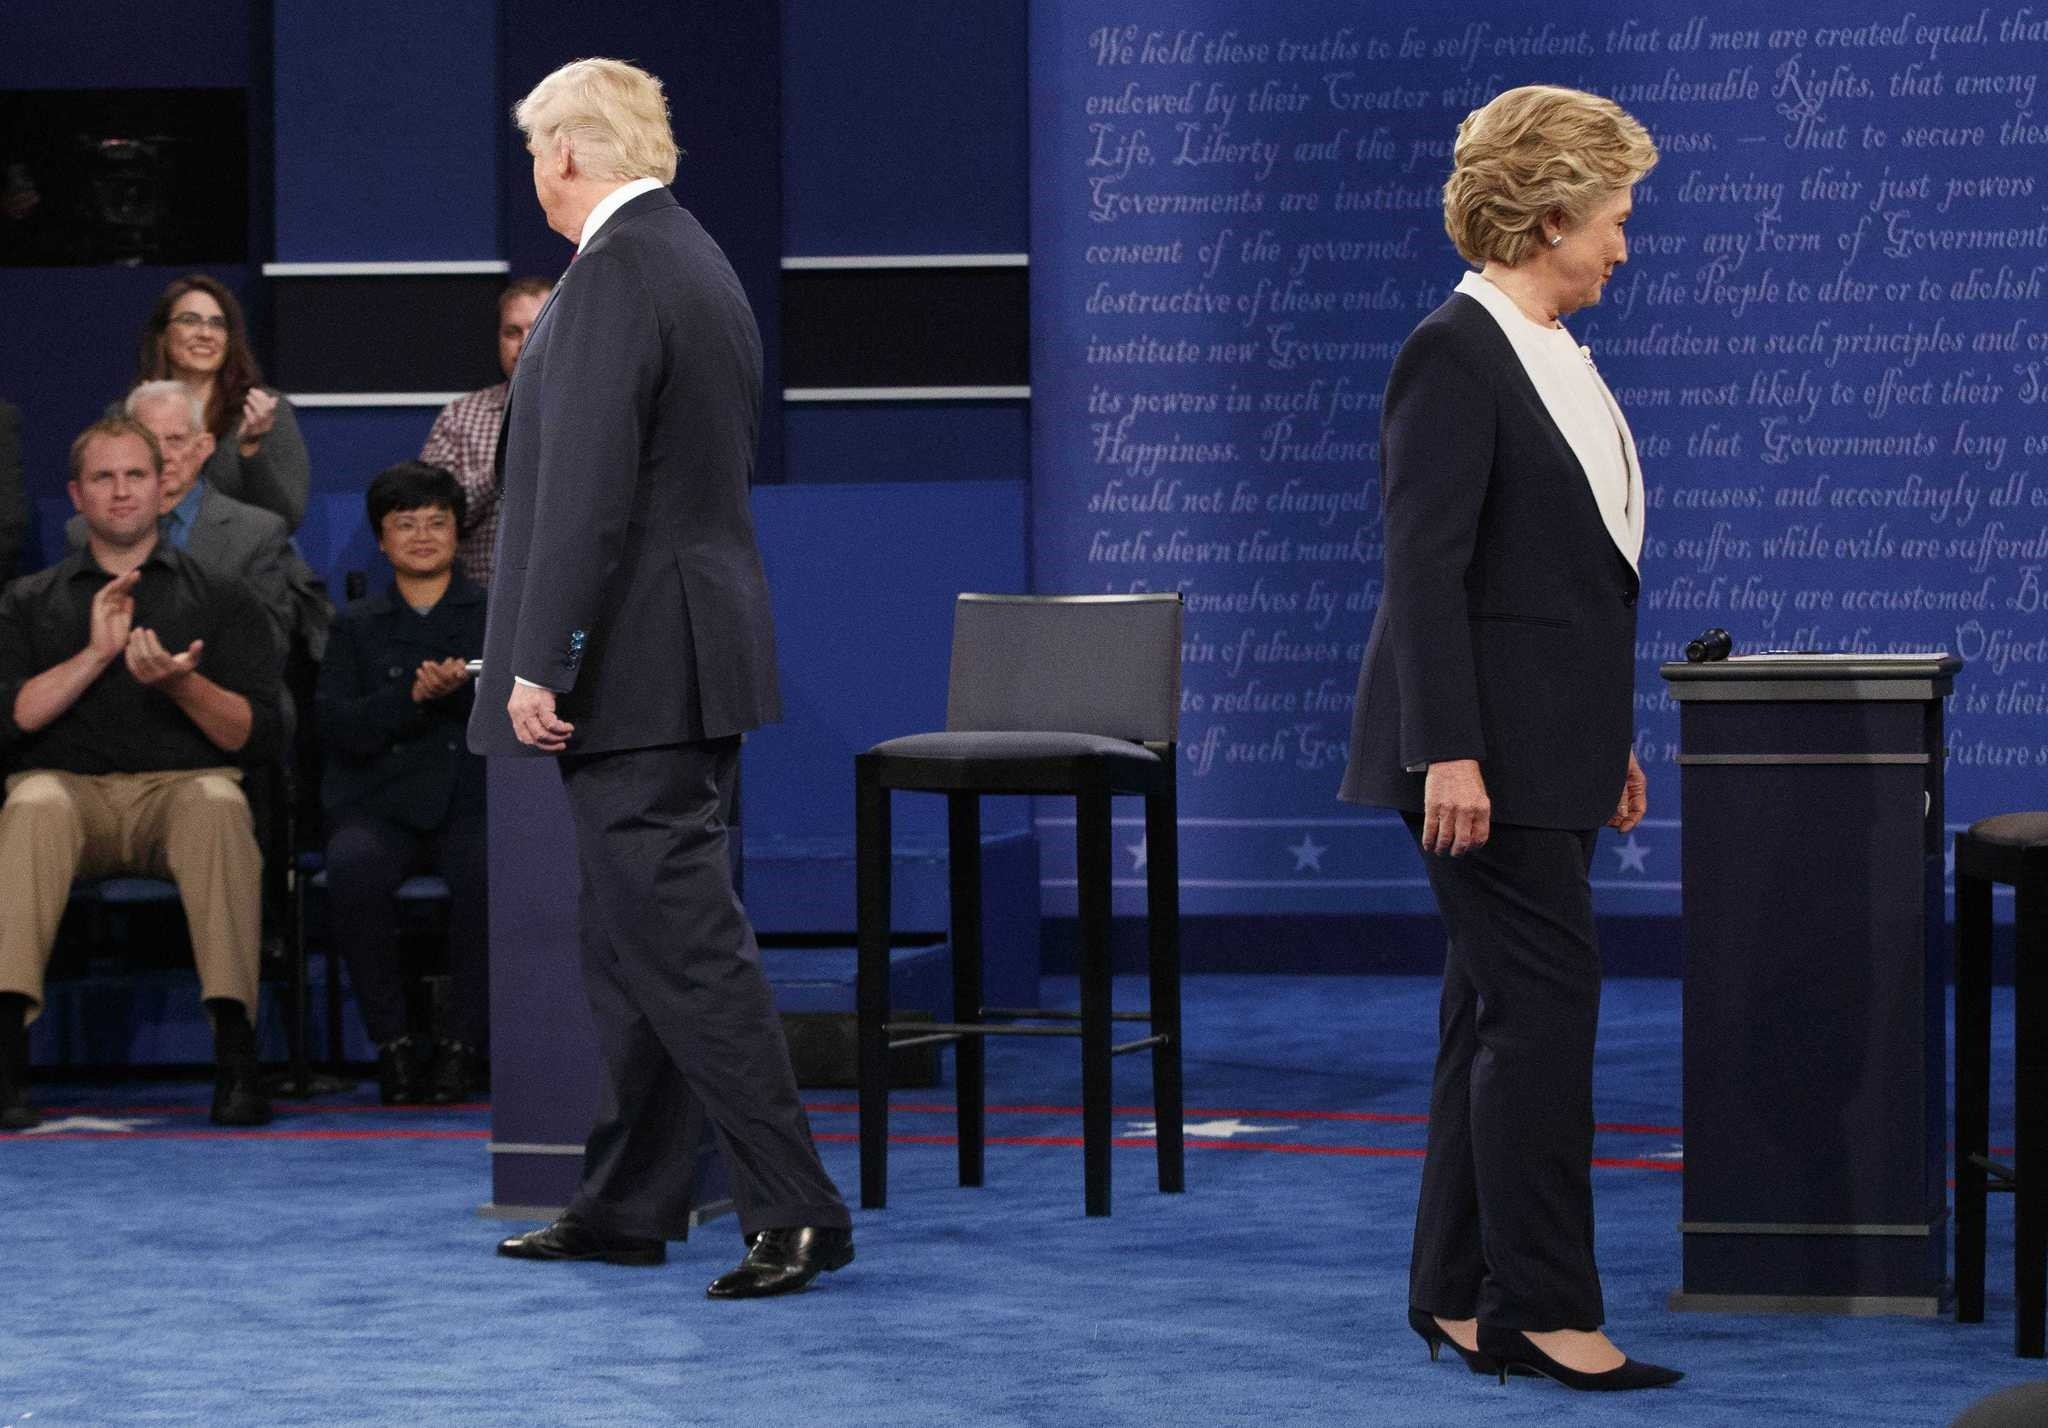 Donald Trump and Hillary Clinton walking to their chairs as they arrive for the second presidential debate at Washington University in St. Louis, Oct. 9, 2016.